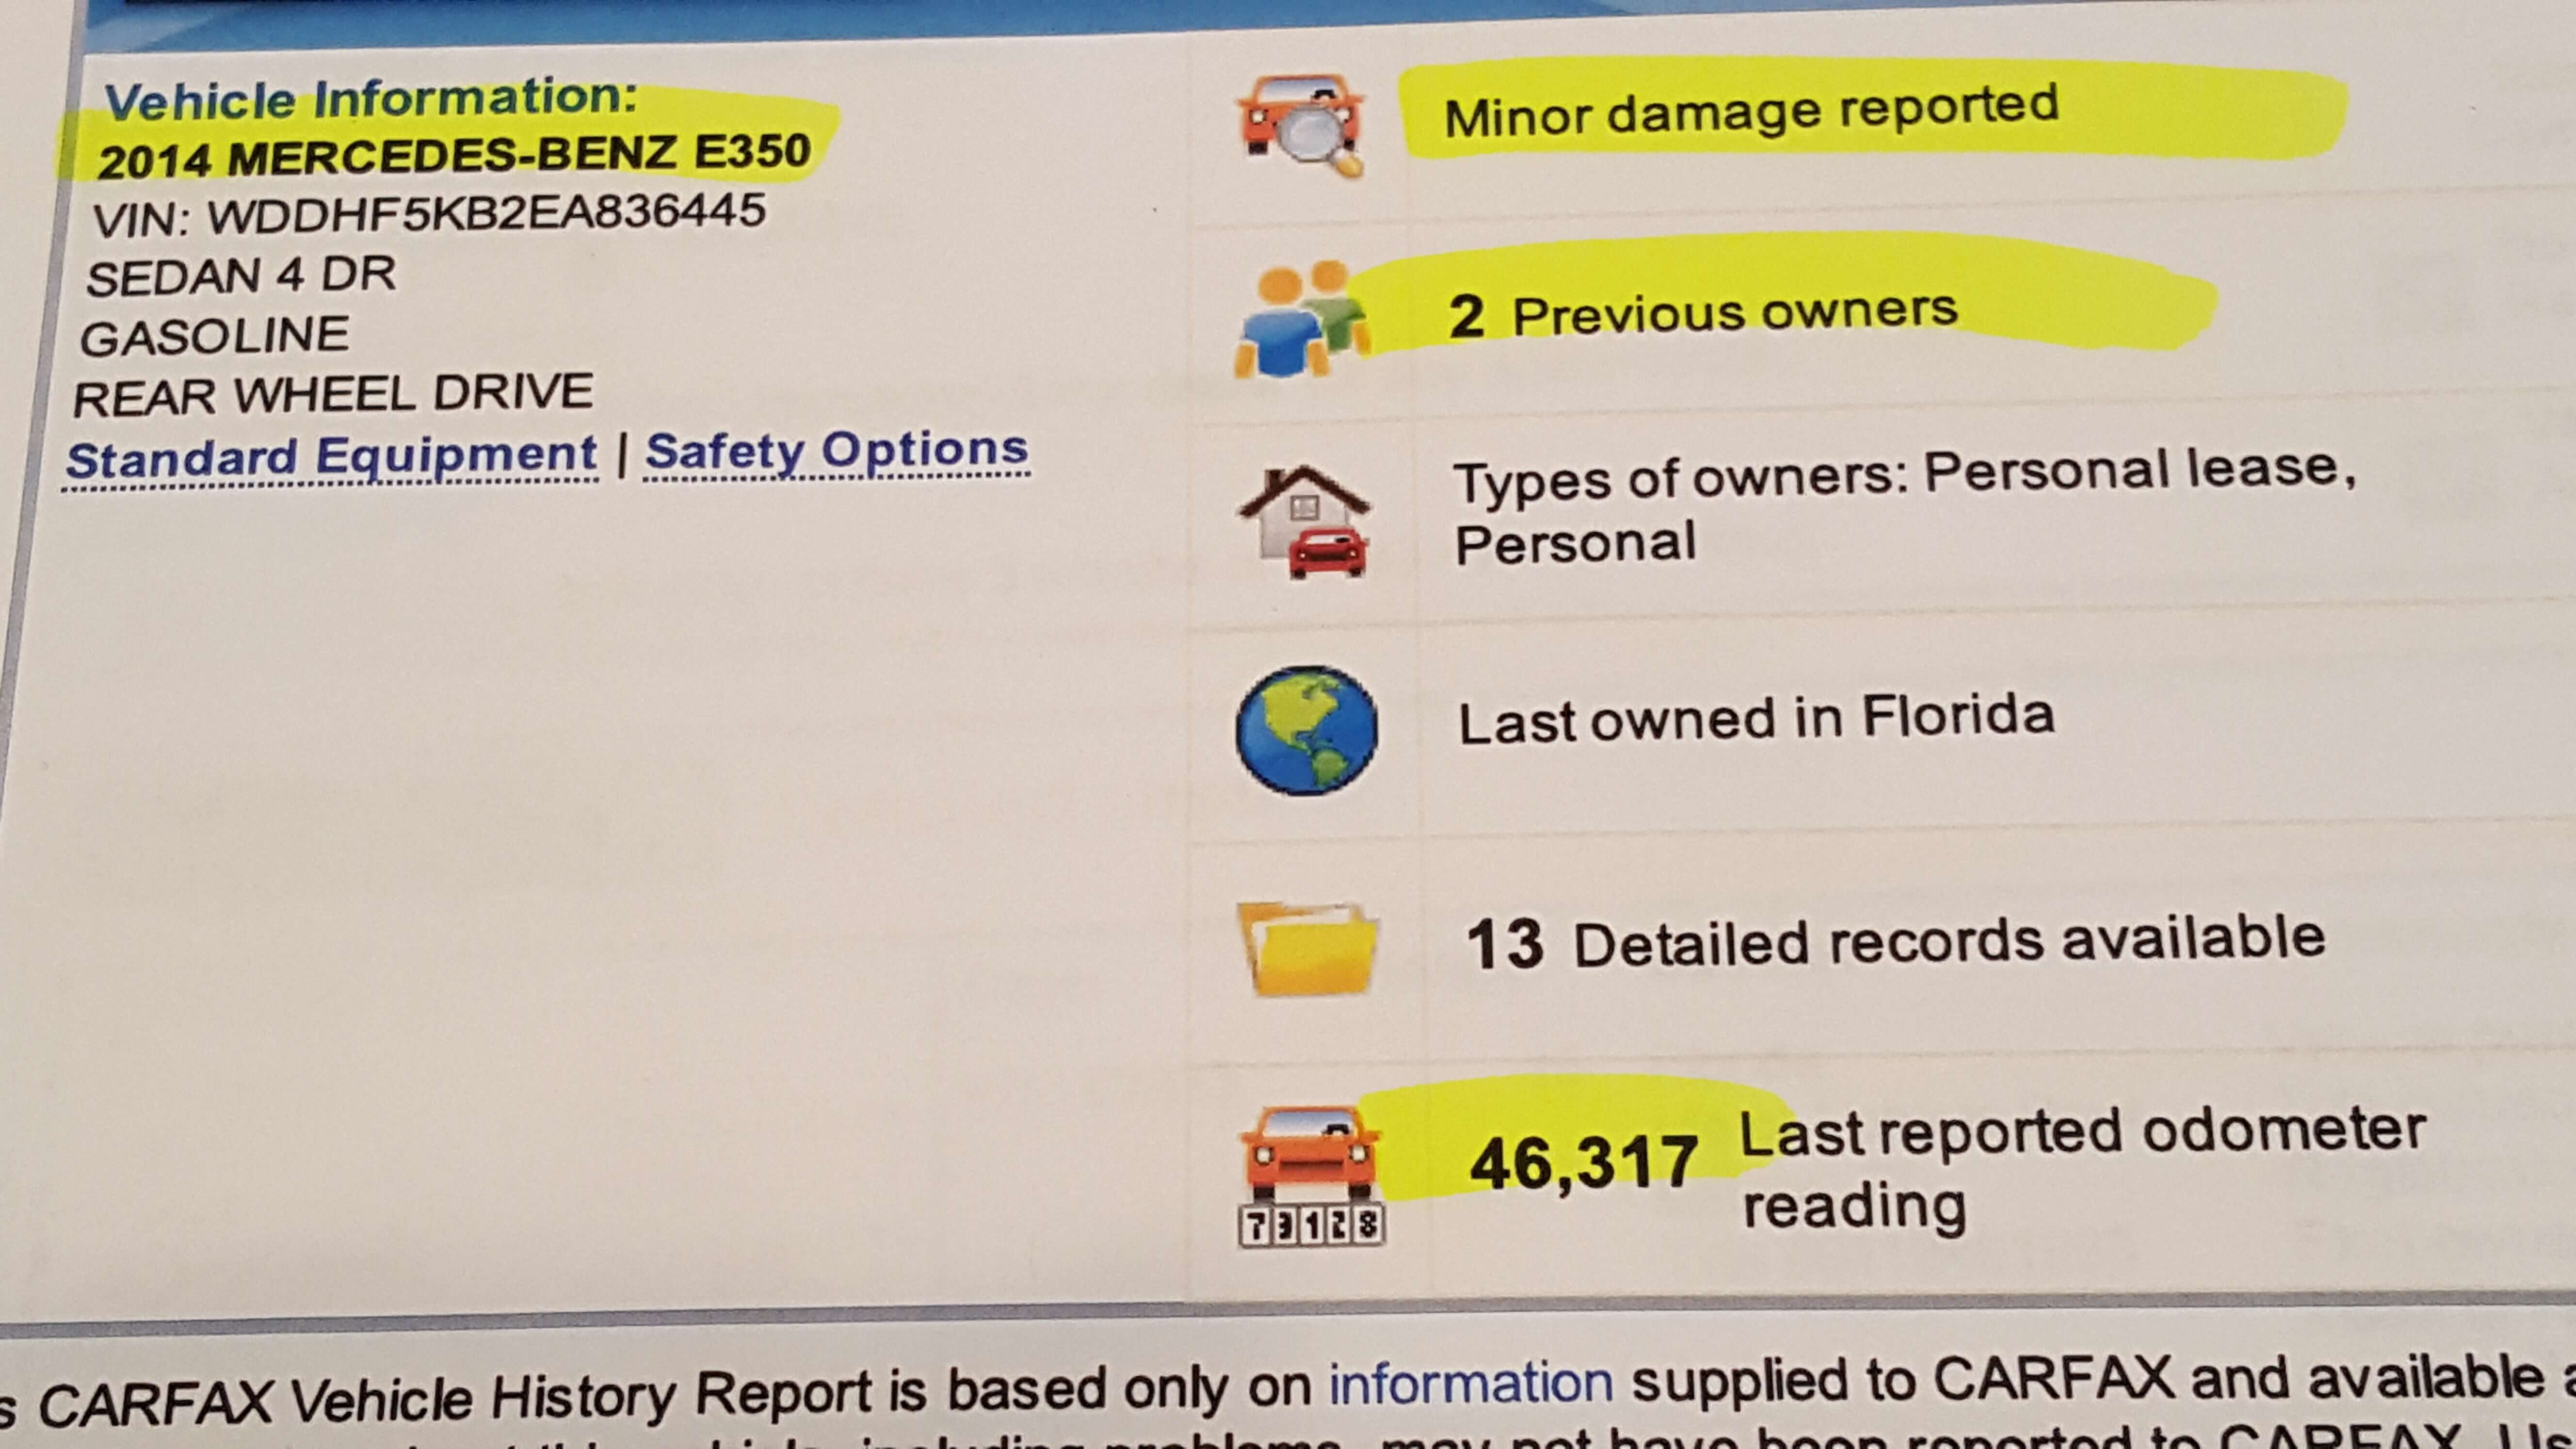 Summary of vehicle history report shows minor accident, 2 previous owners, high mileage